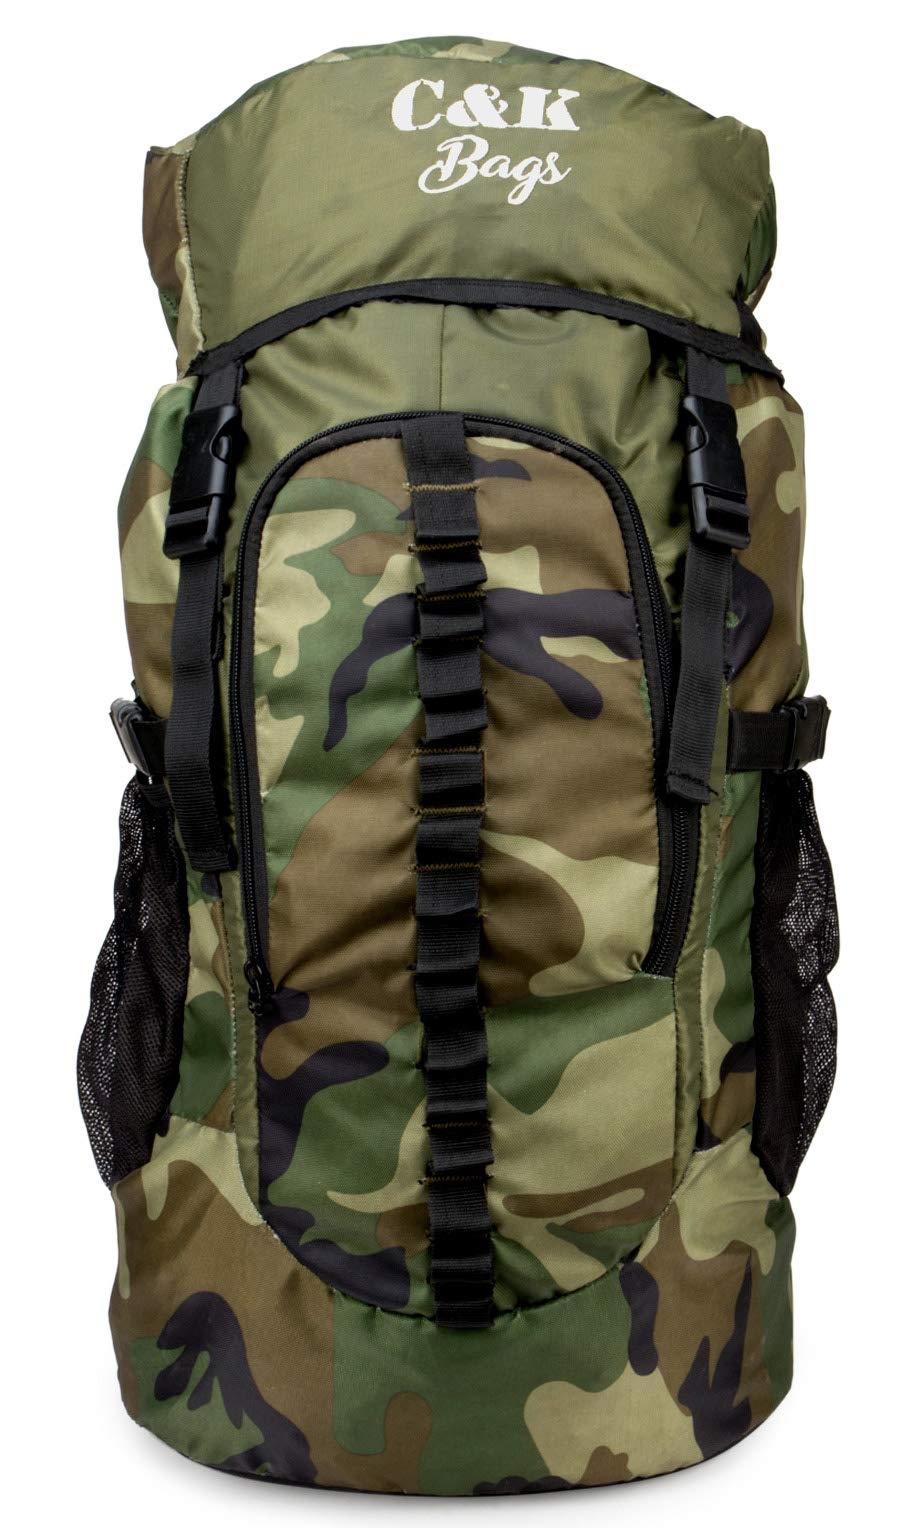 Chris & Kate Large Army Green Camouflage Bag || Travel Backpack || Outdoor Sport Camp Hiking Trekking Bag || Camping Rucksack Daypack Bag (45 litres)(CKB_186LL) (B07FSG54X9) Amazon Price History, Amazon Price Tracker